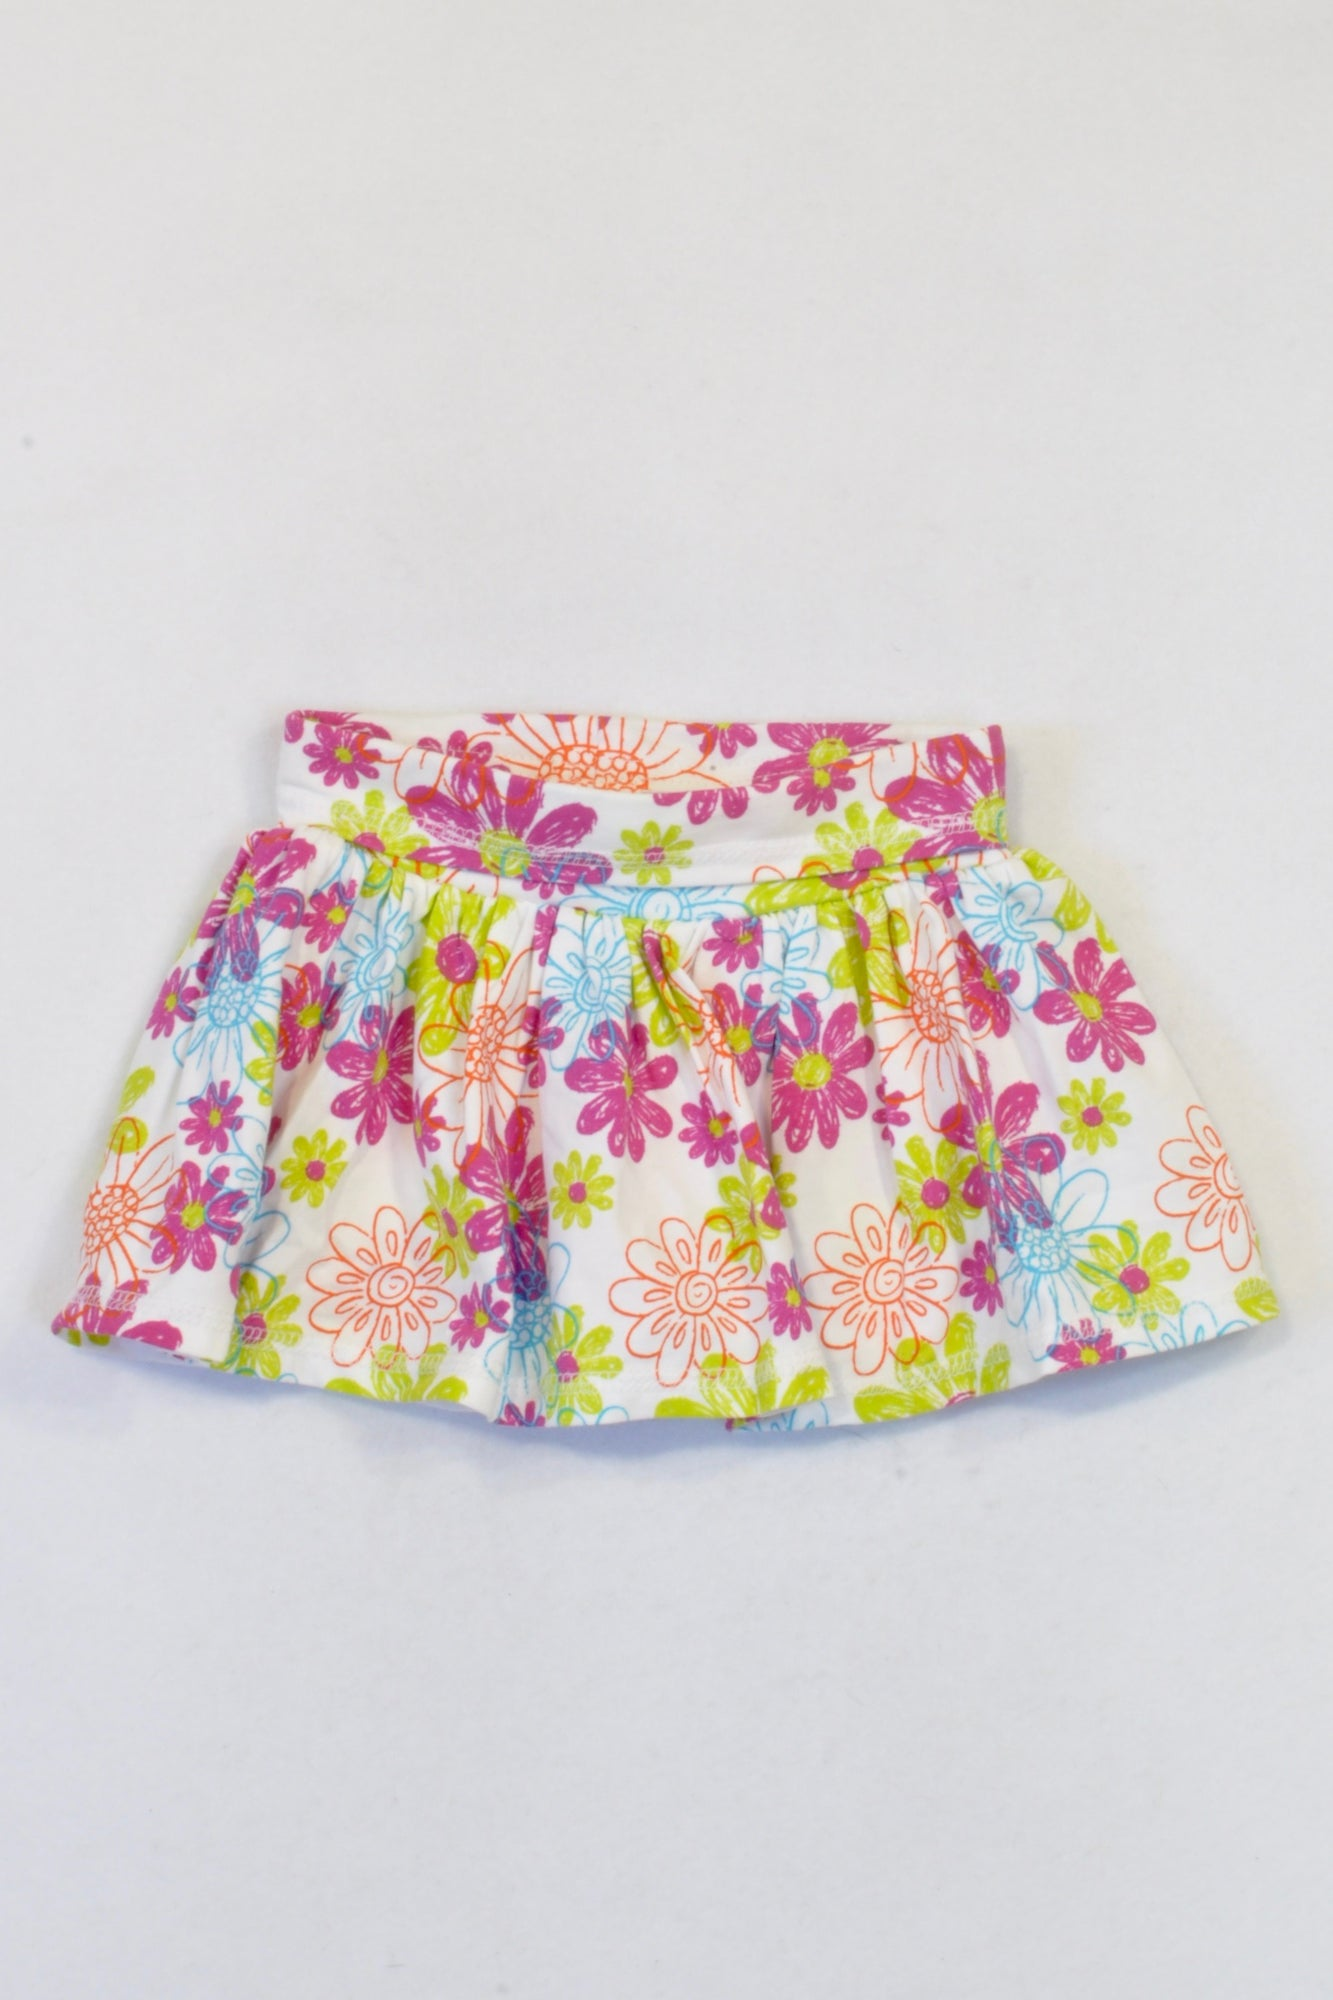 New Koala Kids Multicoloured Floral Skirt Girls 6-9 months